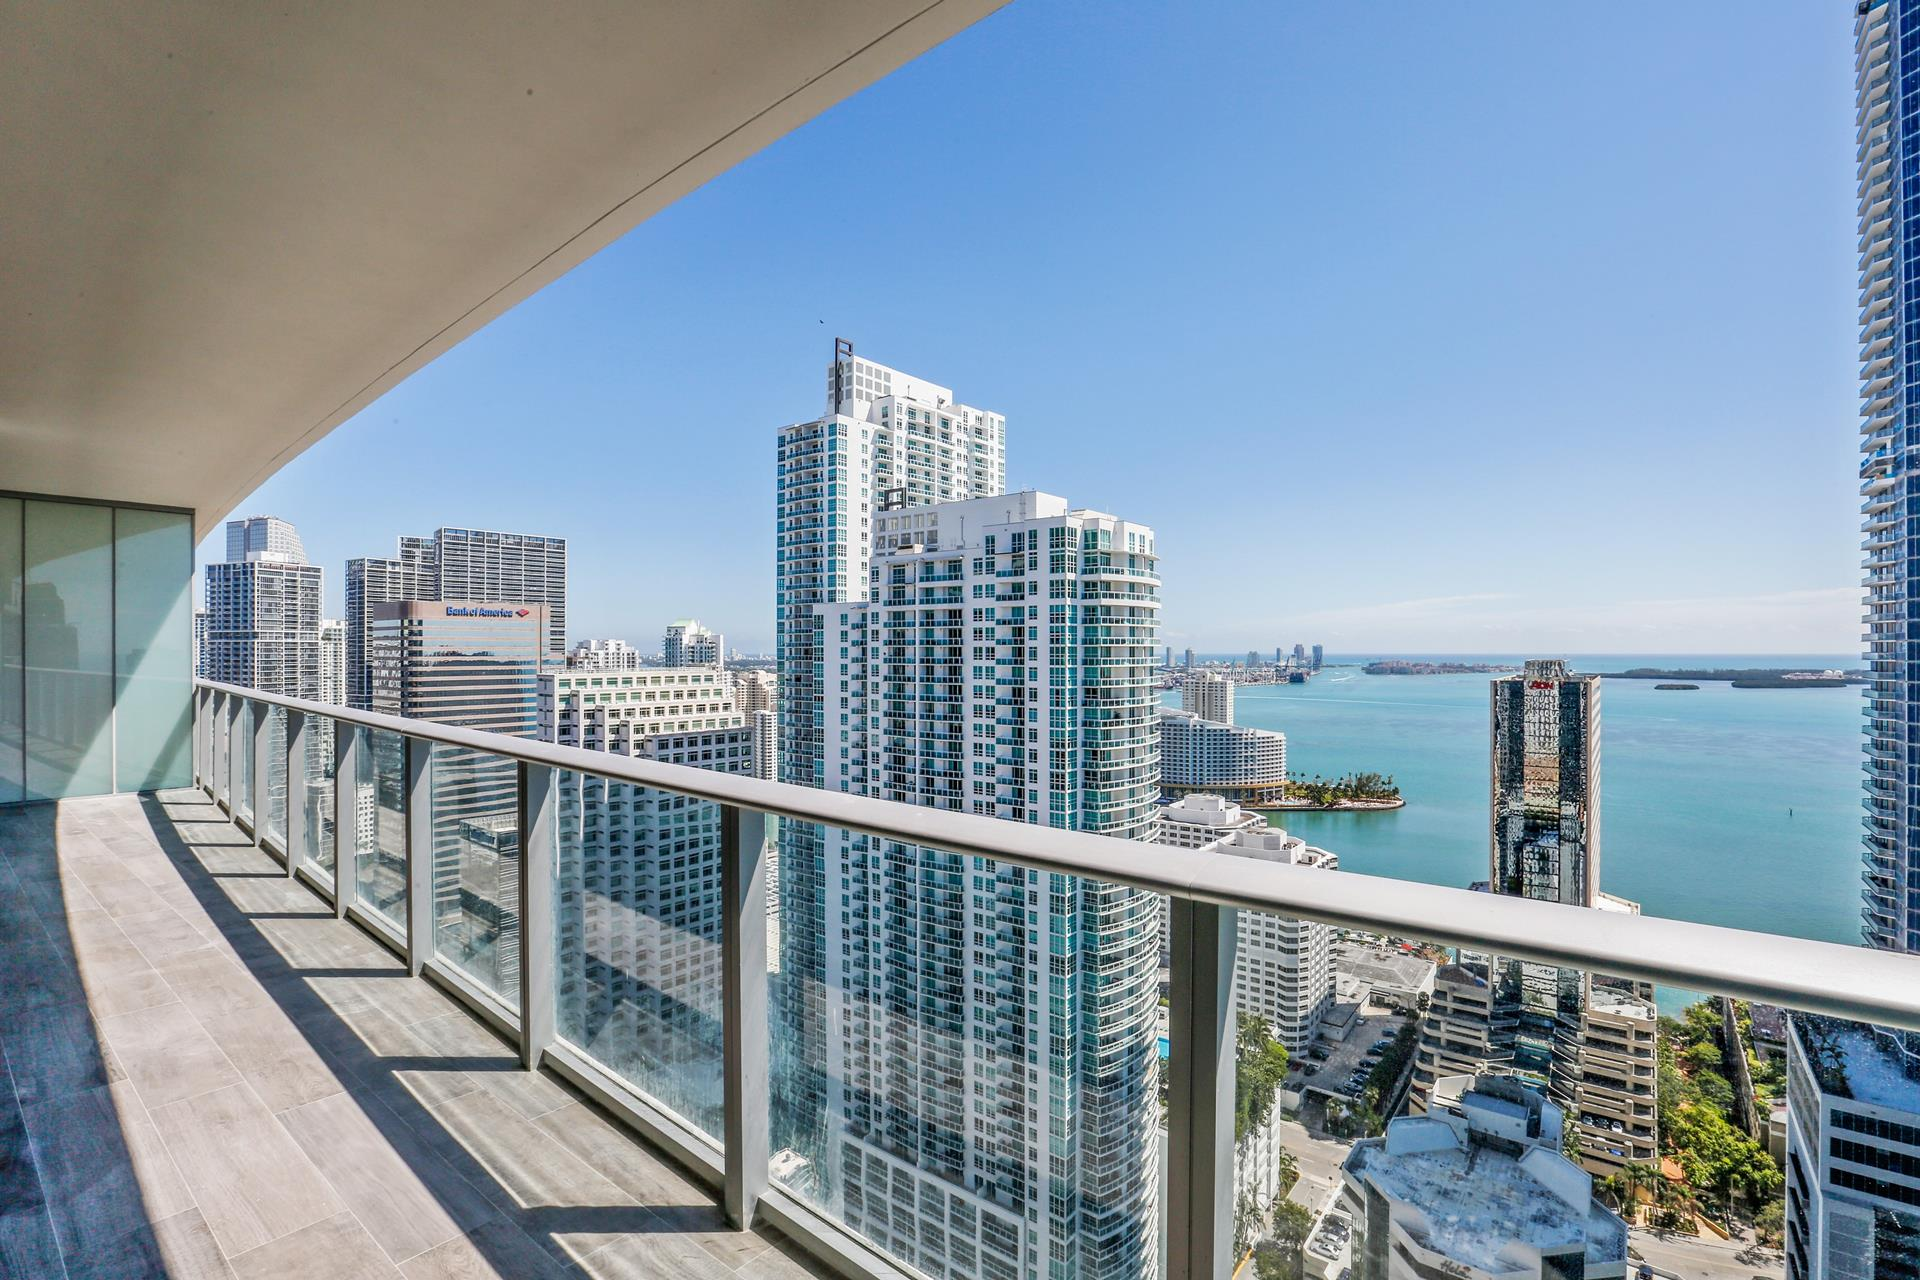 1010 Brickell Ave, 3902 - Miami, Florida